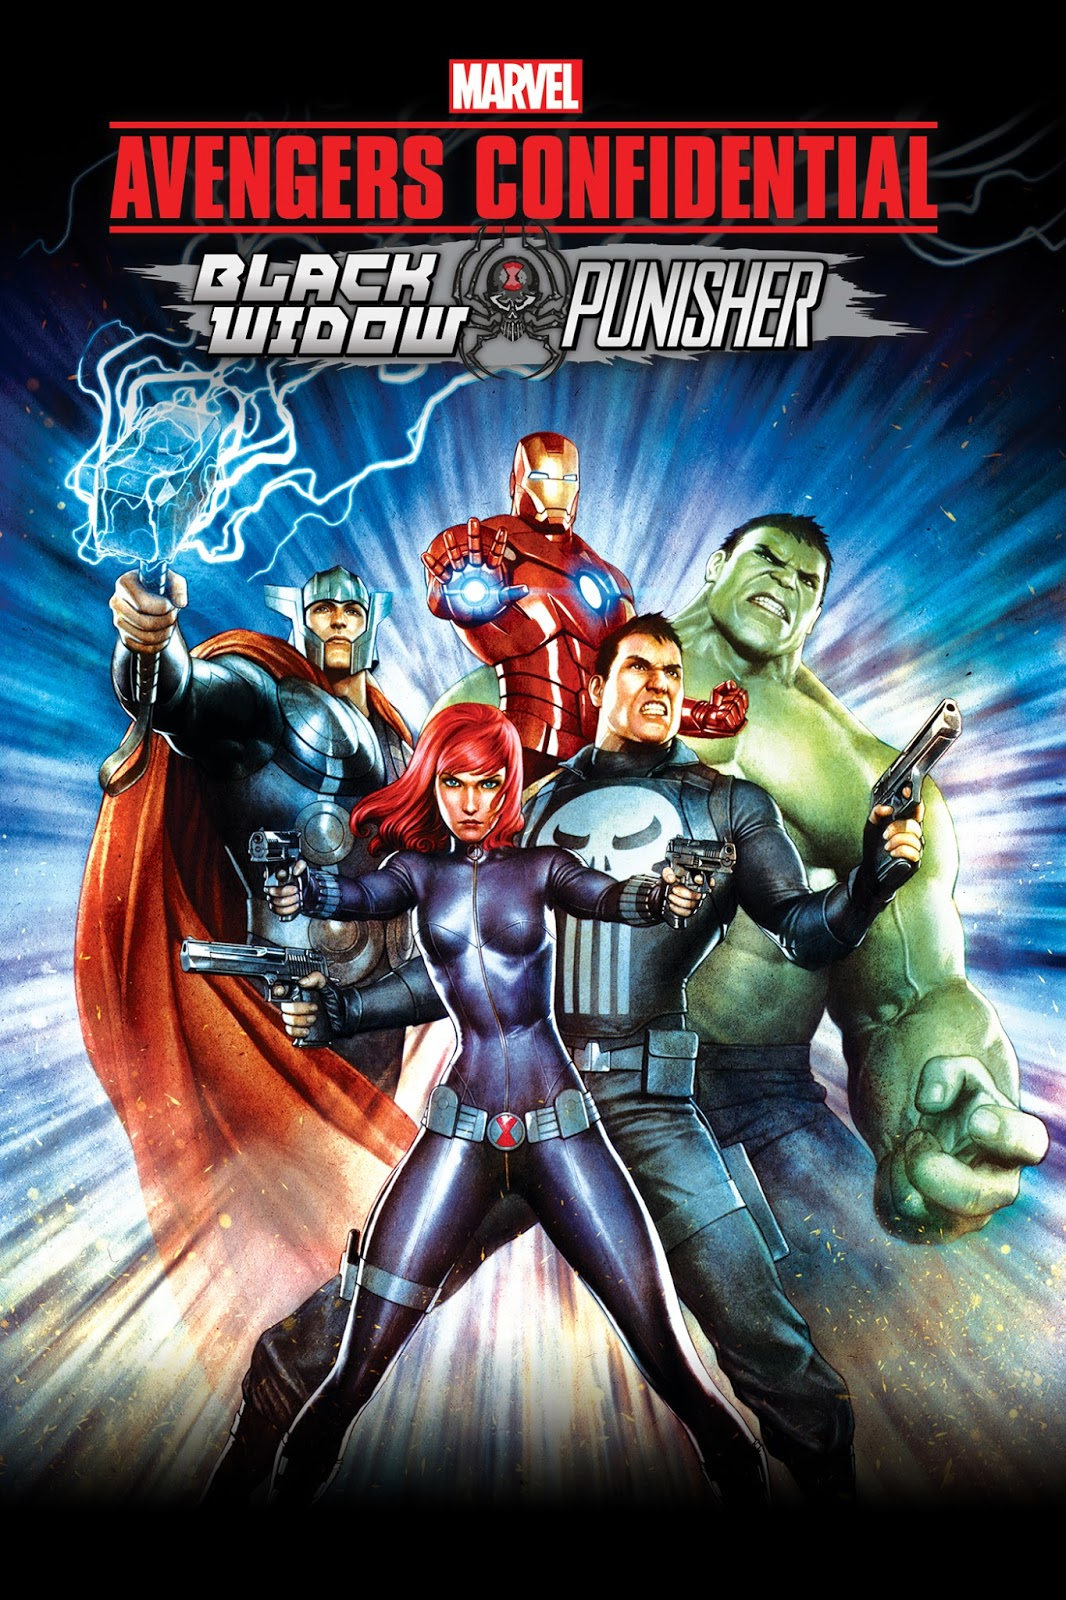 Avengers Los Archivos Secretos Black Widow Y Punisher (2014) [Dvdrip] [Latino]